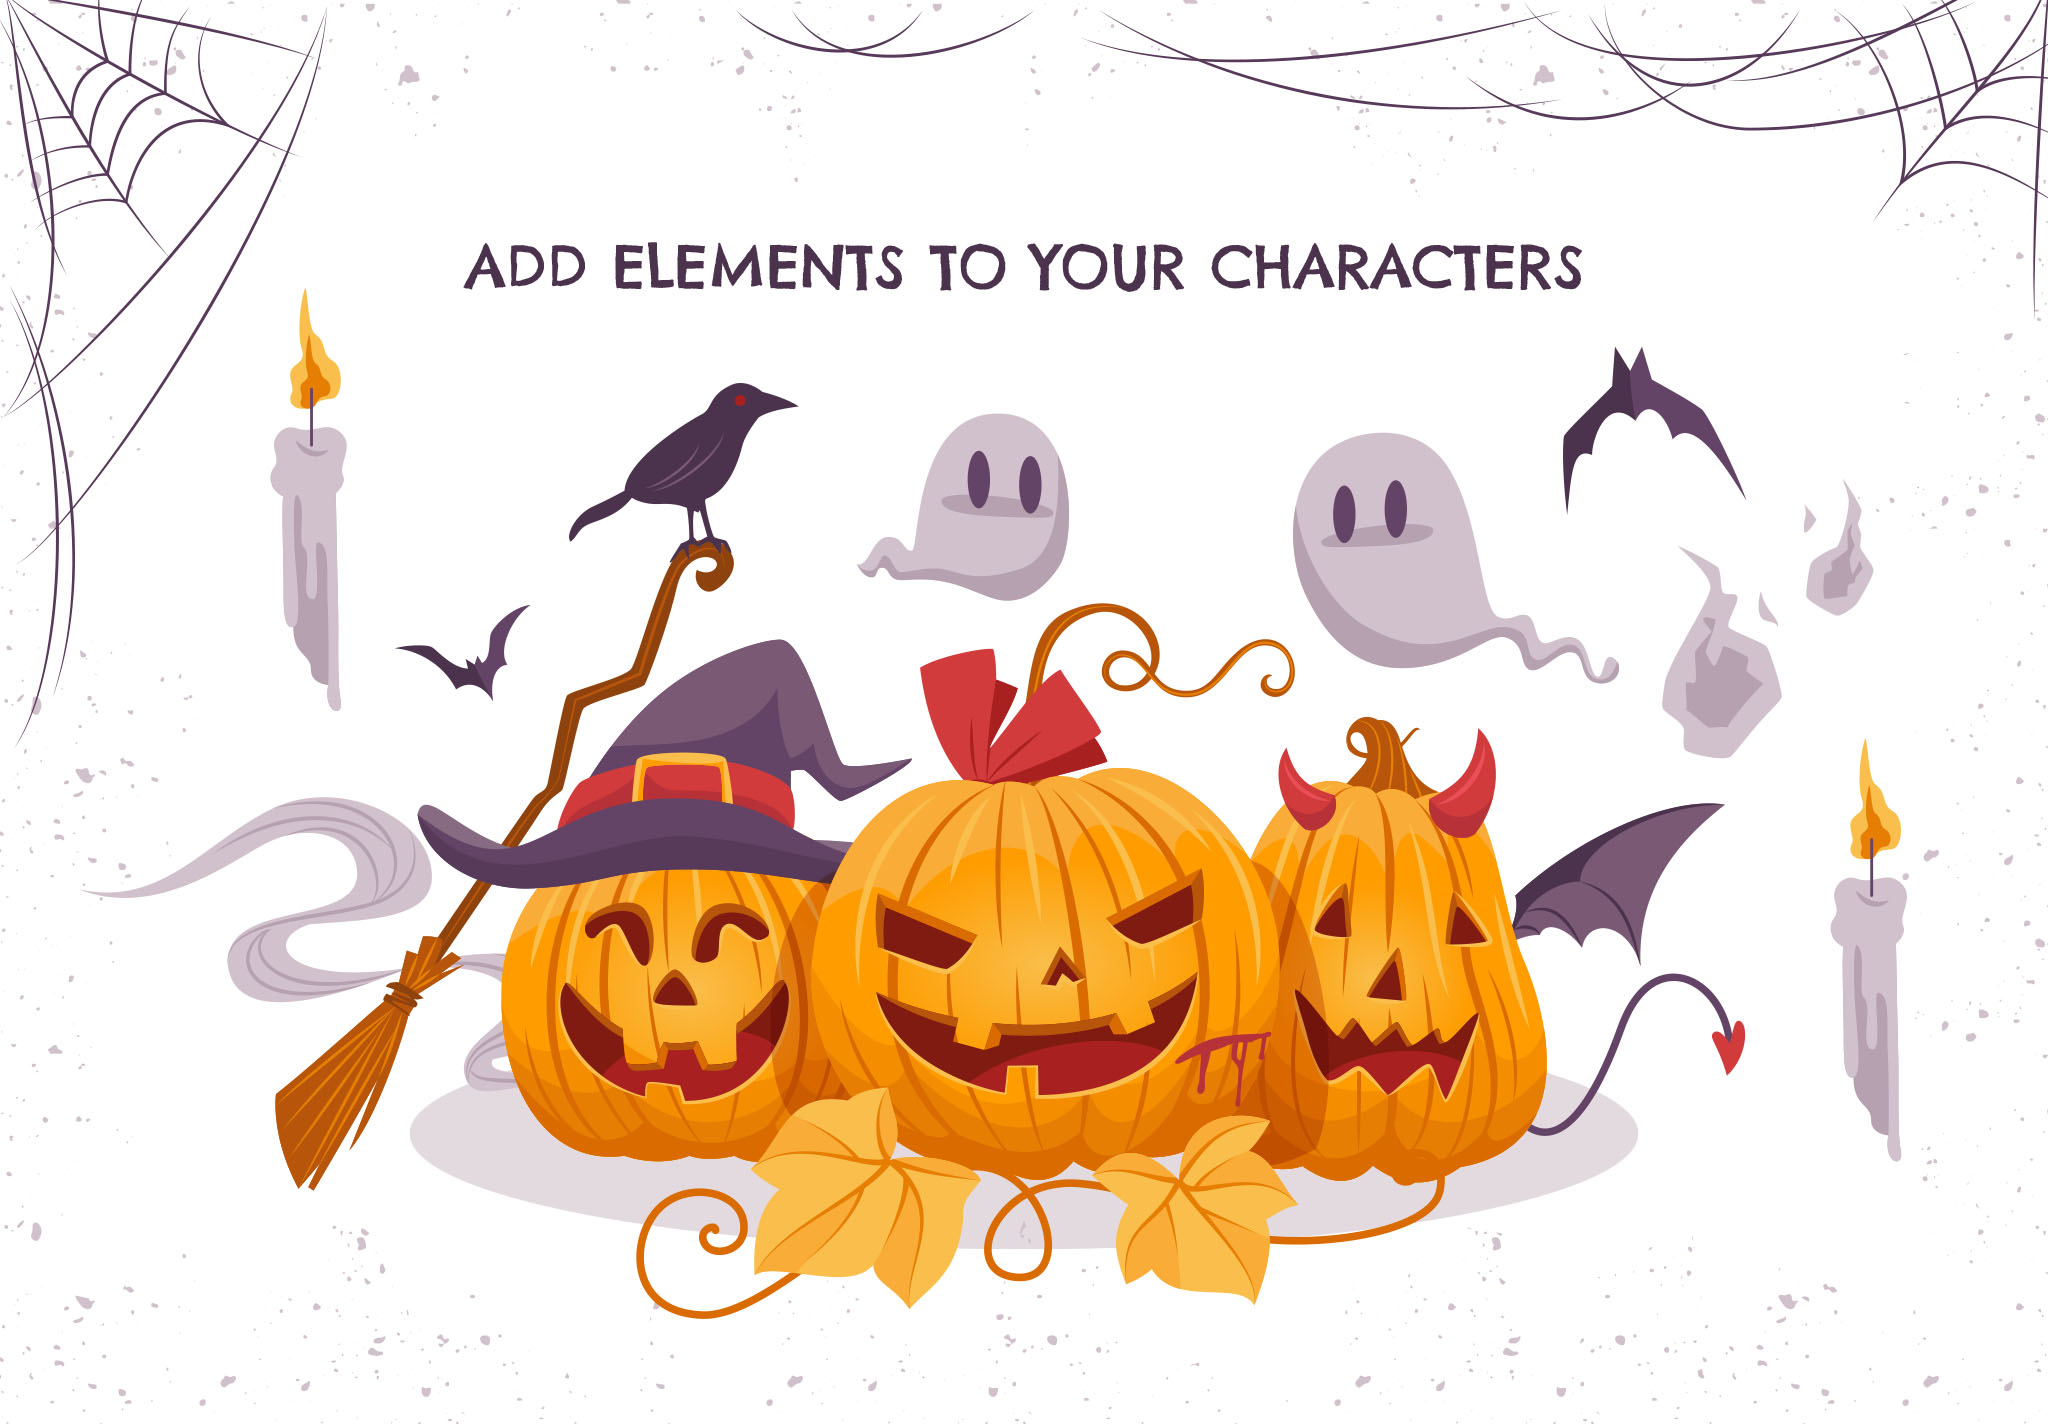 Halloween Pumpkin Character Illustrations